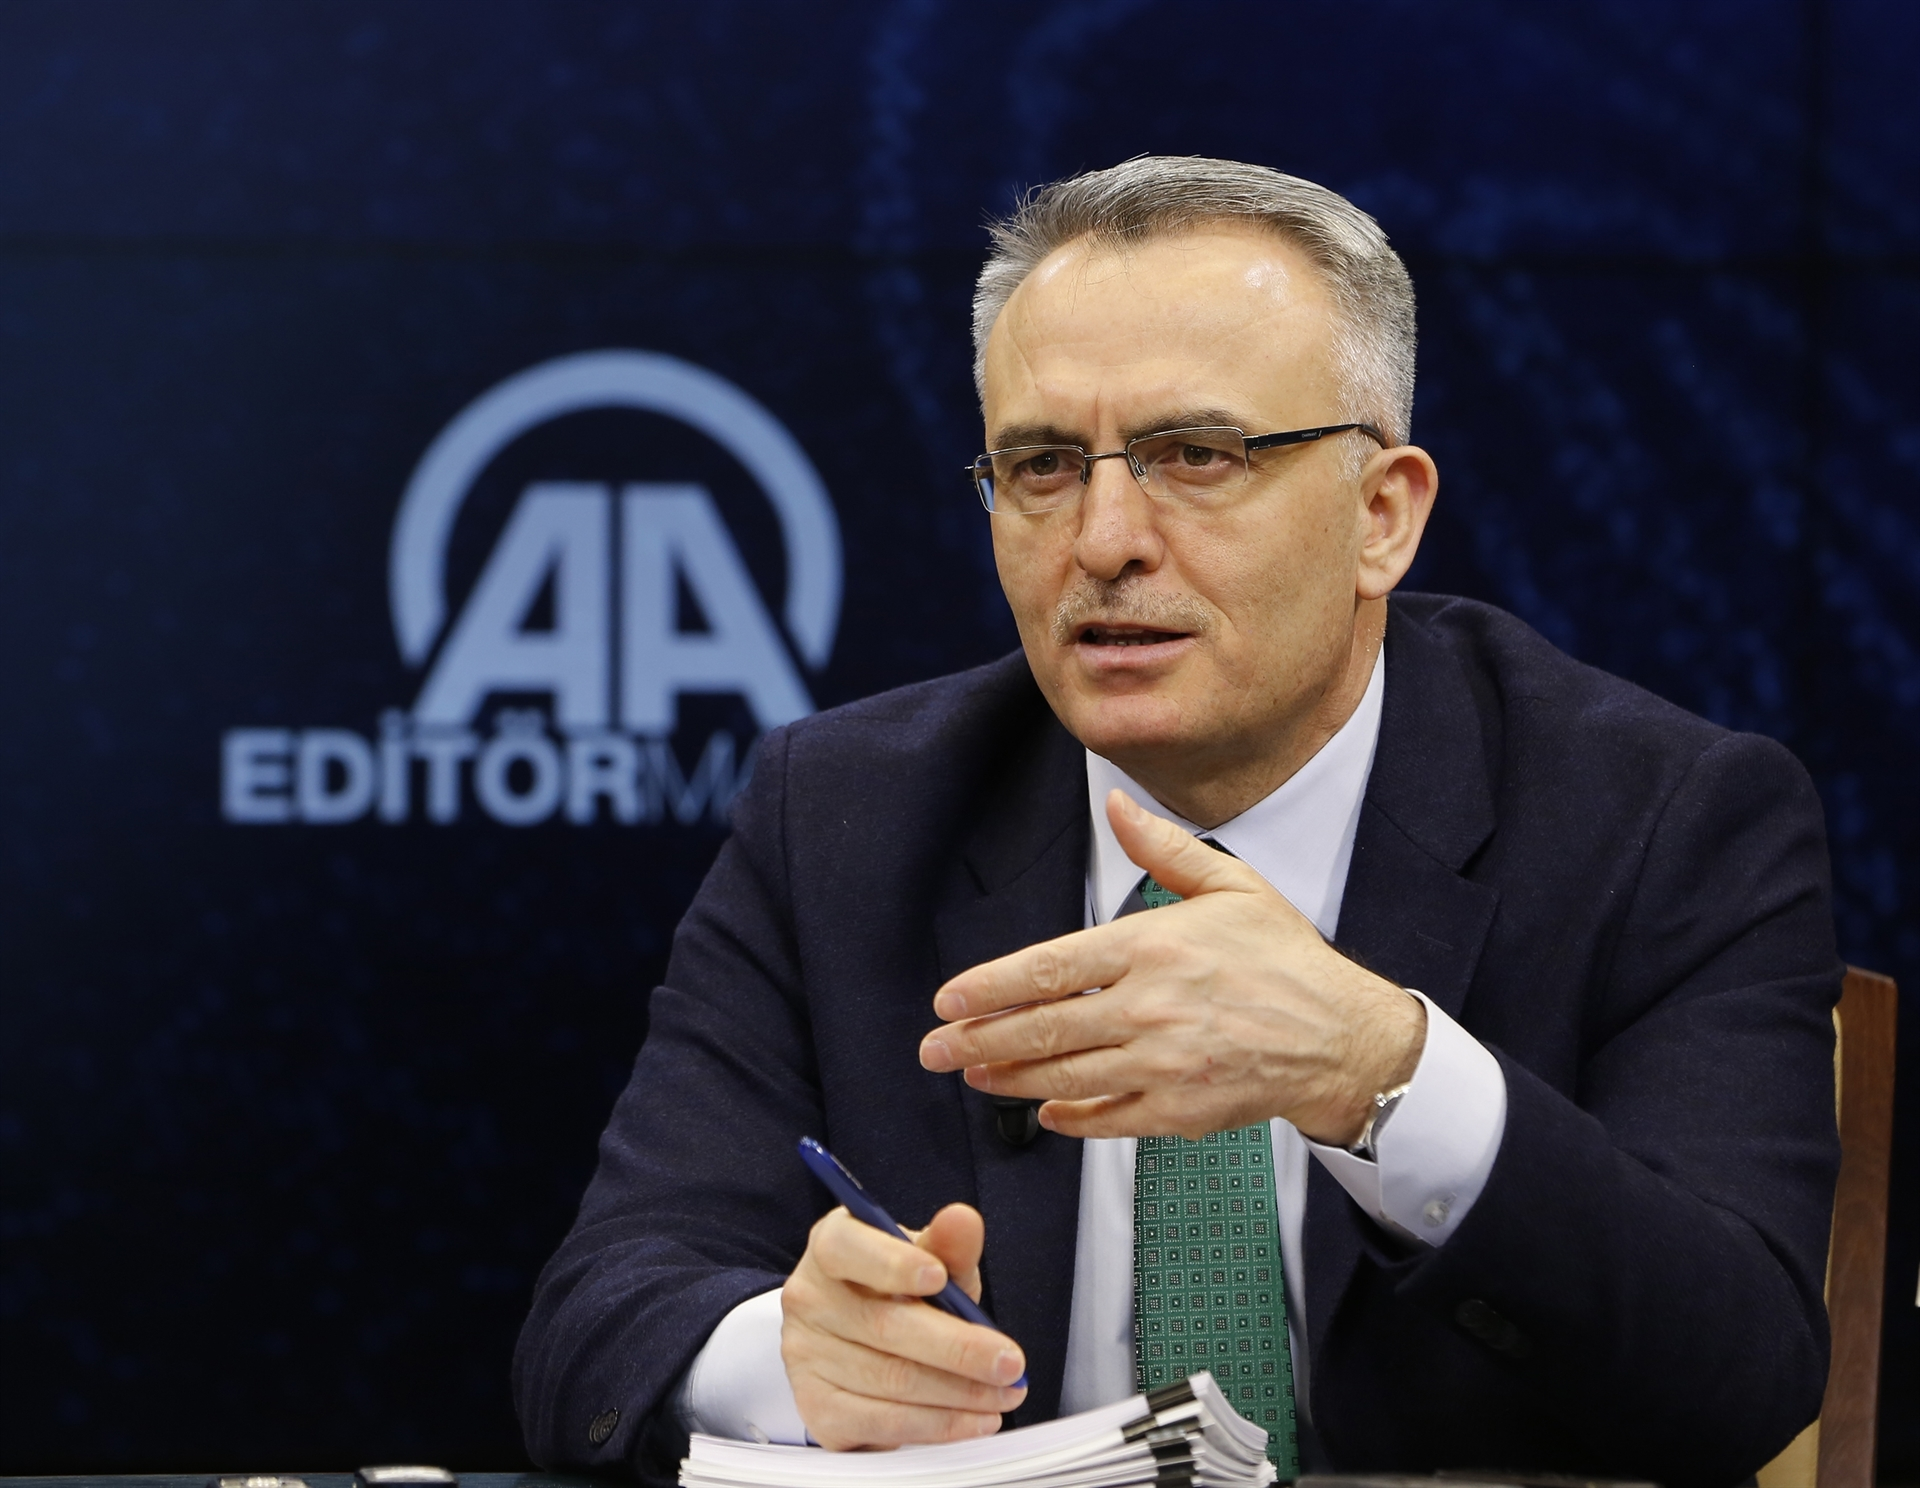 The operation will positively affect expectations for Turkey's economy in 2018